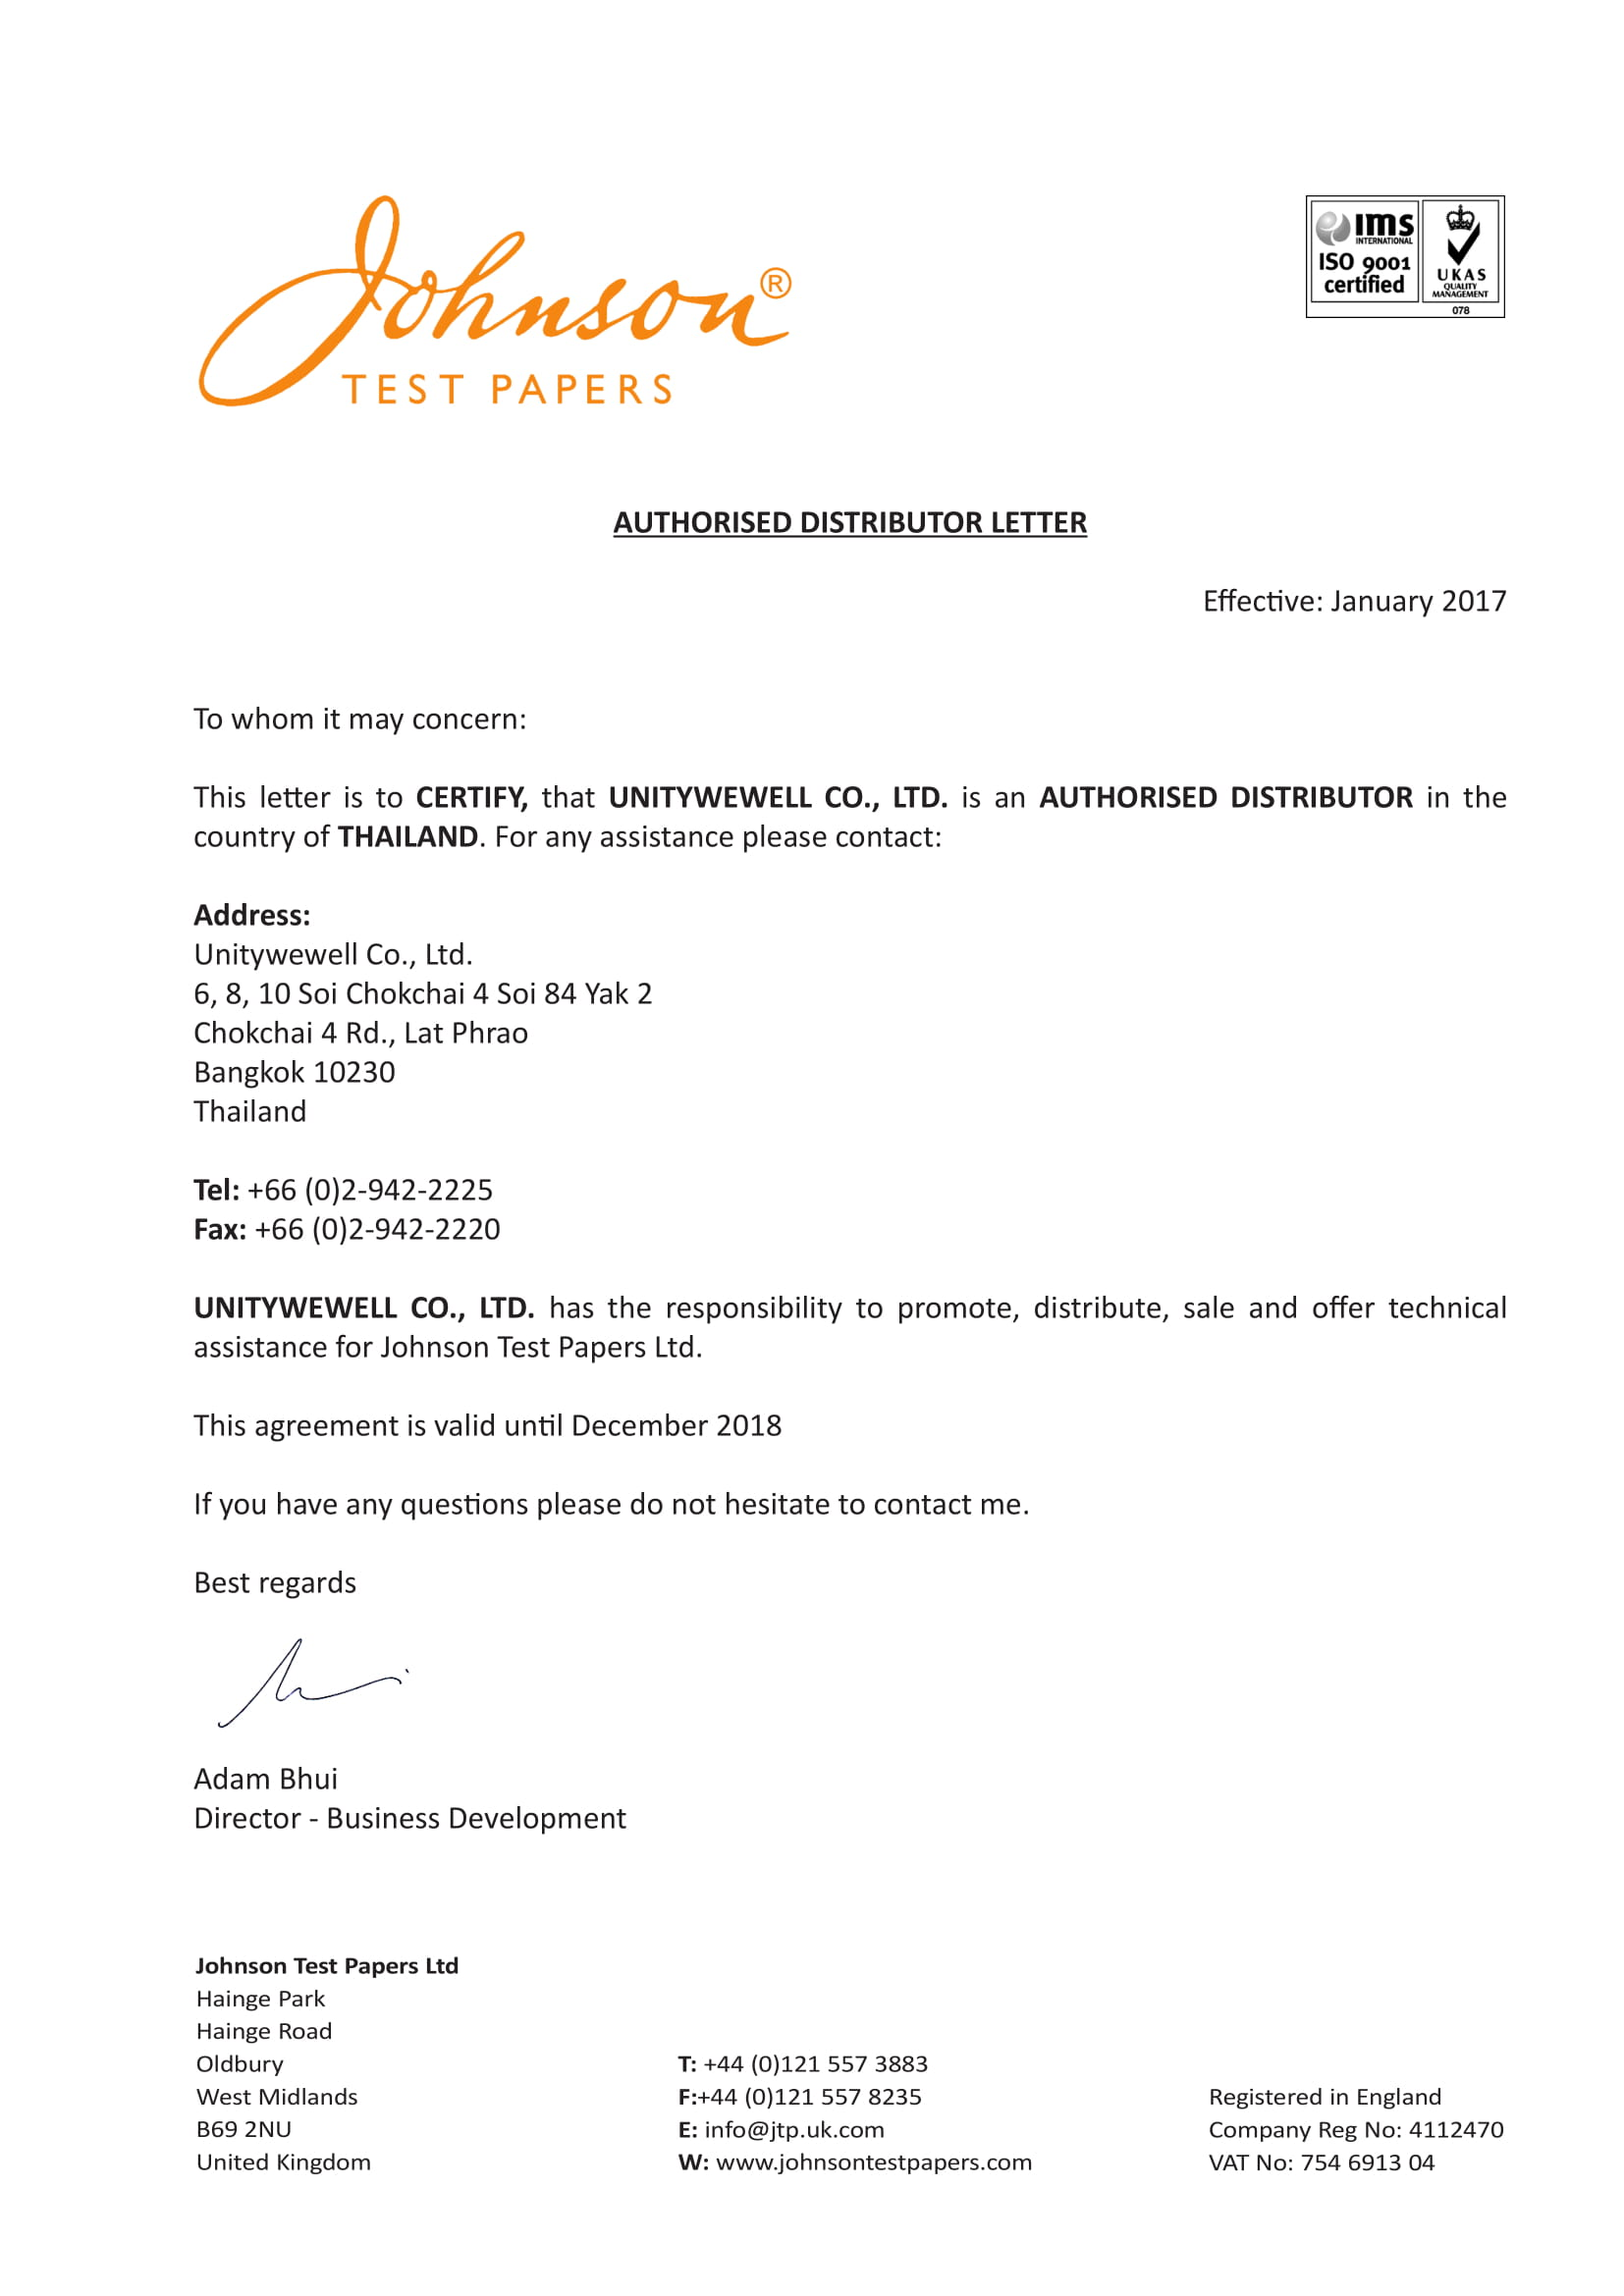 6 Official Distributor Letter Examples  PDF  Examples